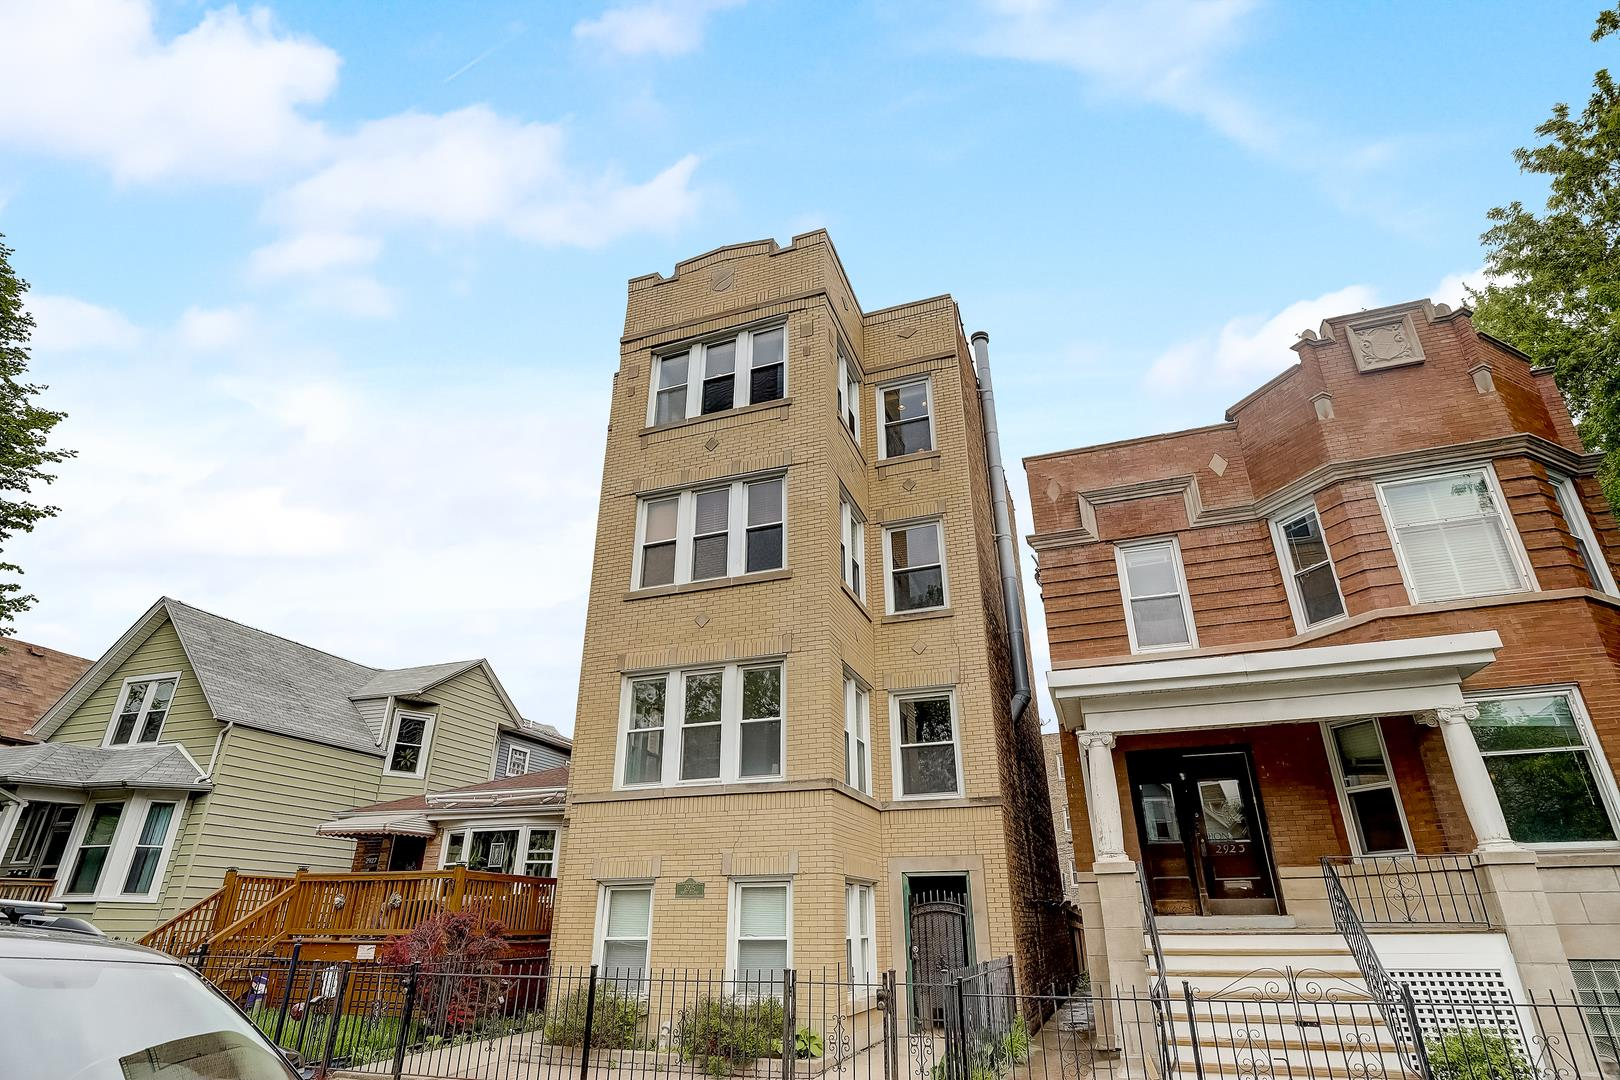 2925 N WHIPPLE Street #4, Chicago, IL 60618 - #: 11077133